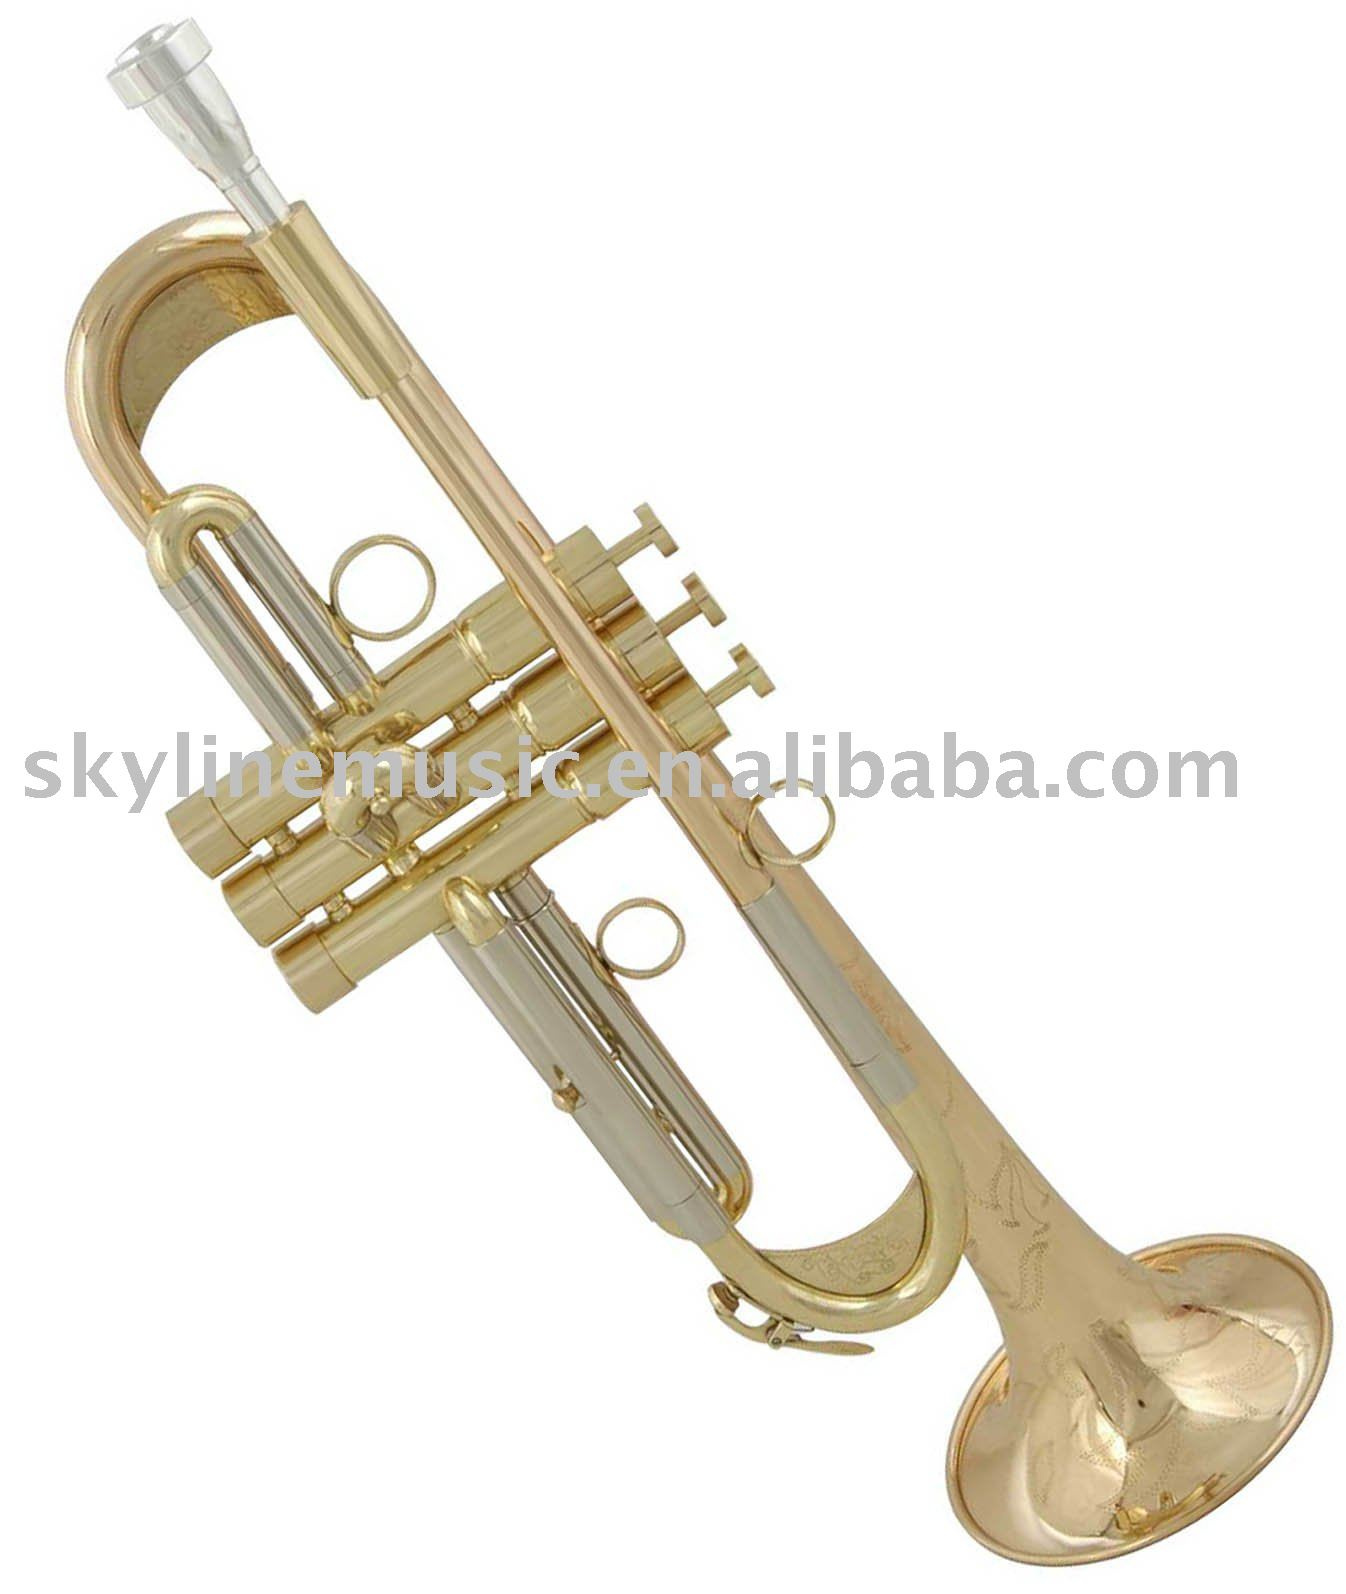 STR133 High grade Bb key trumpet